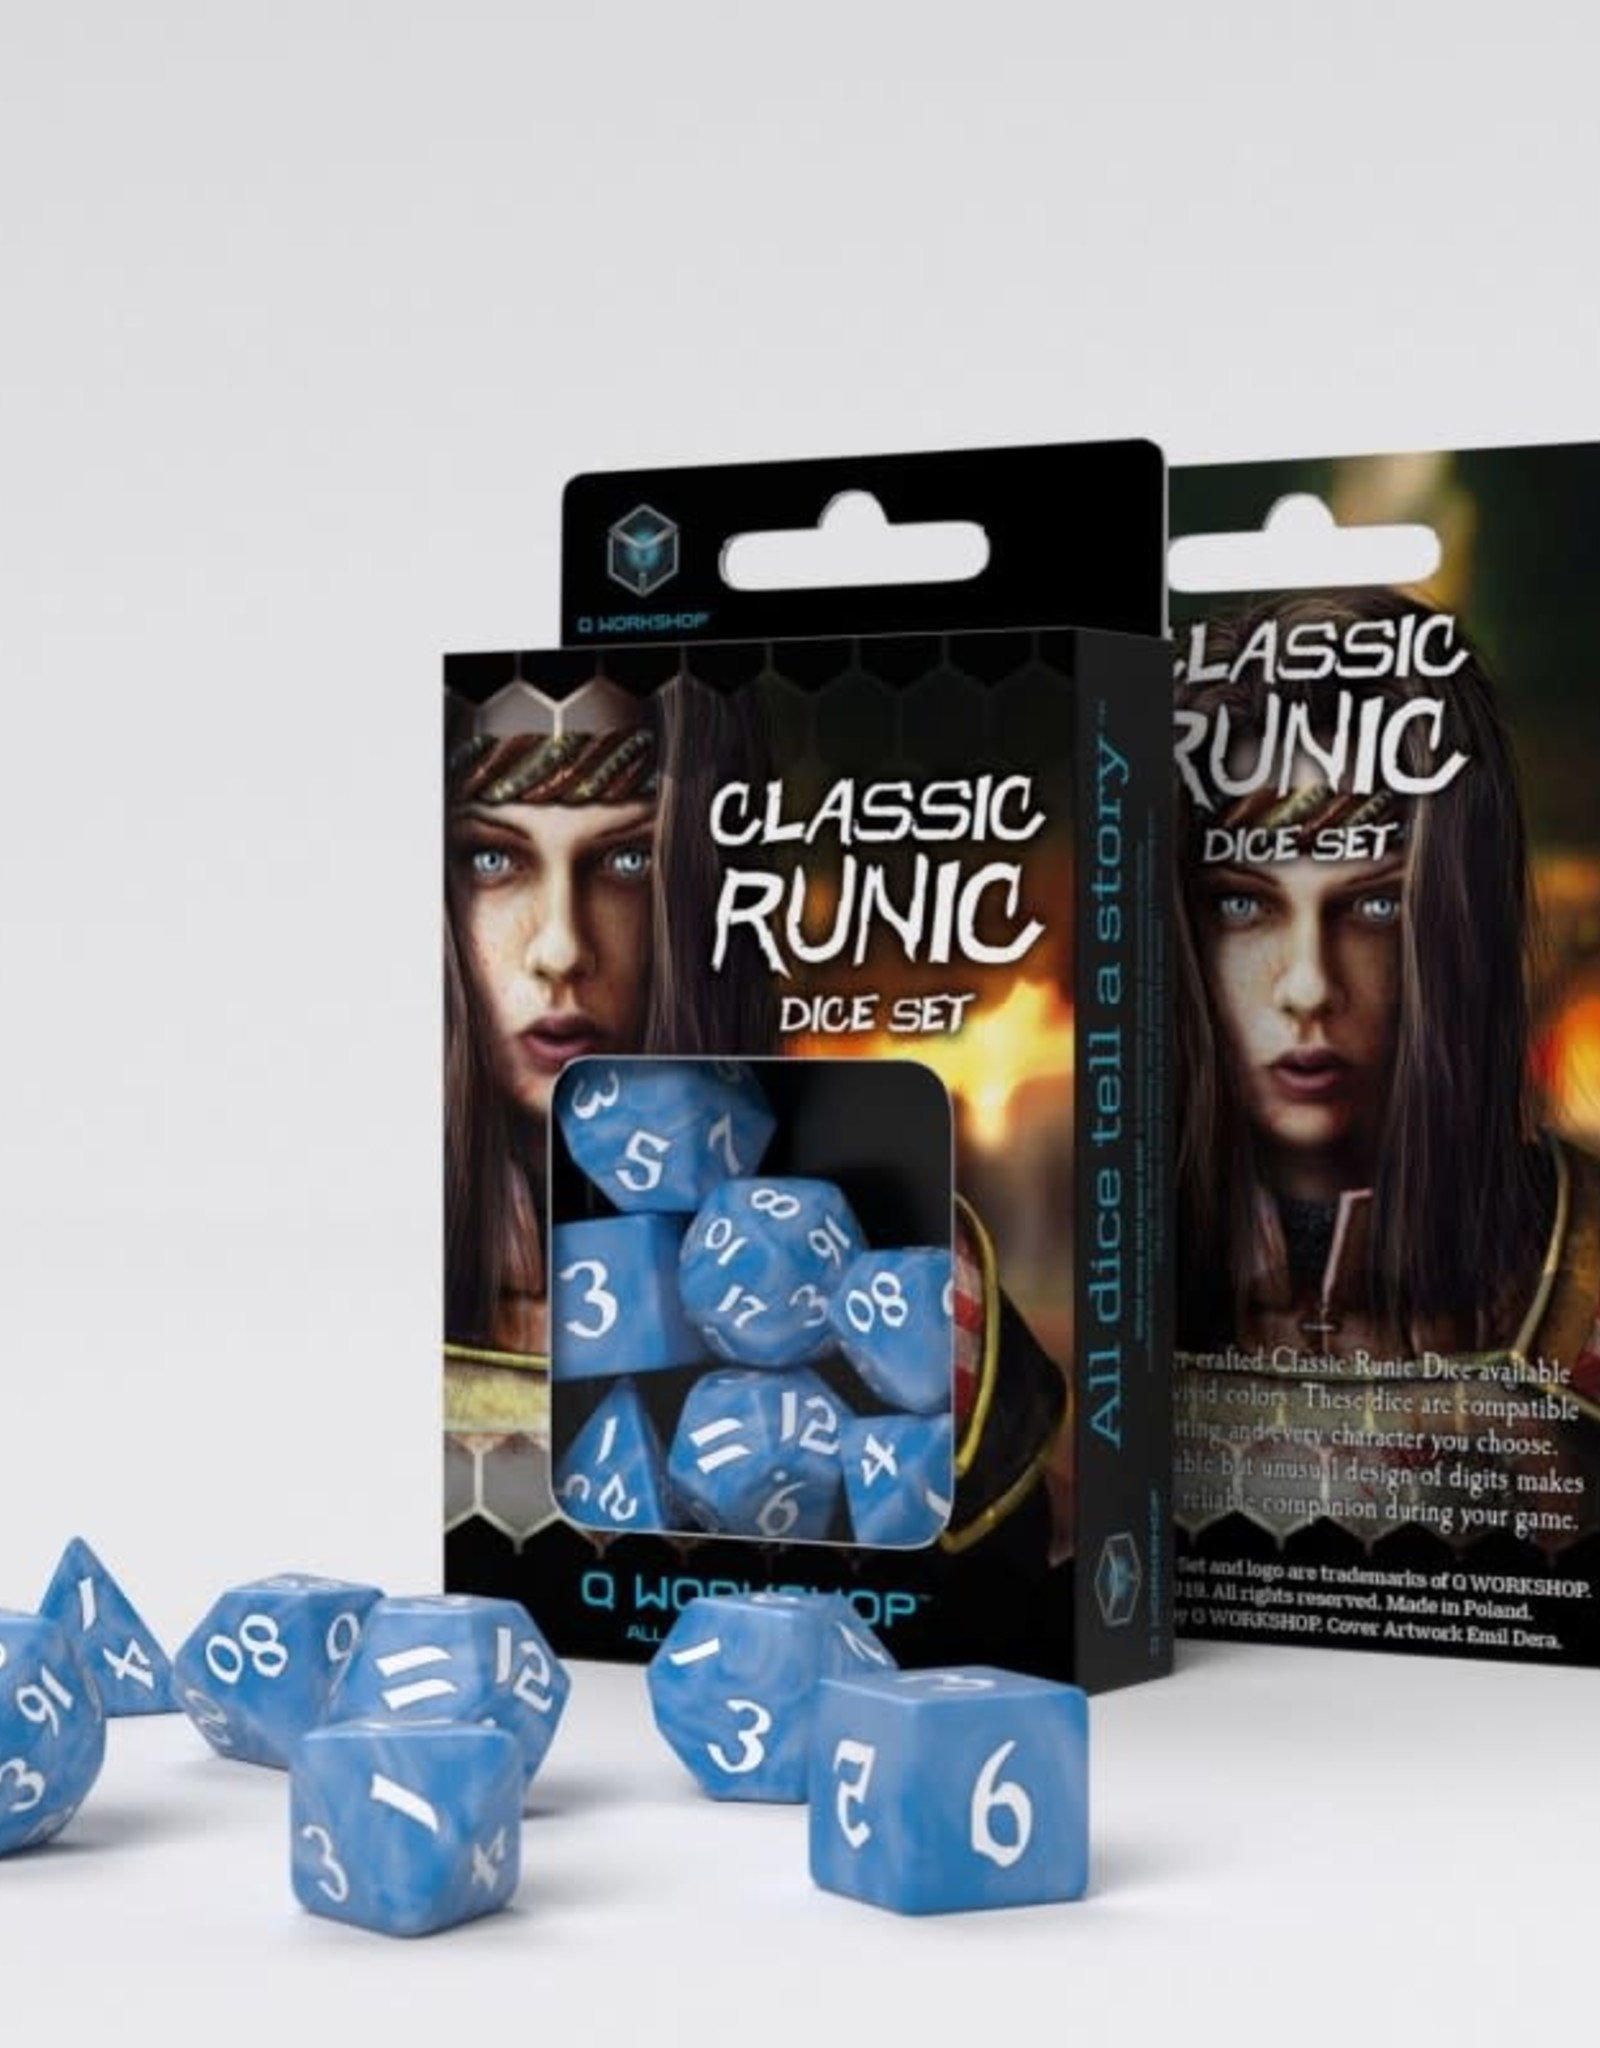 Q Workshop Classic Runic Dice Set Glacier & White (7)